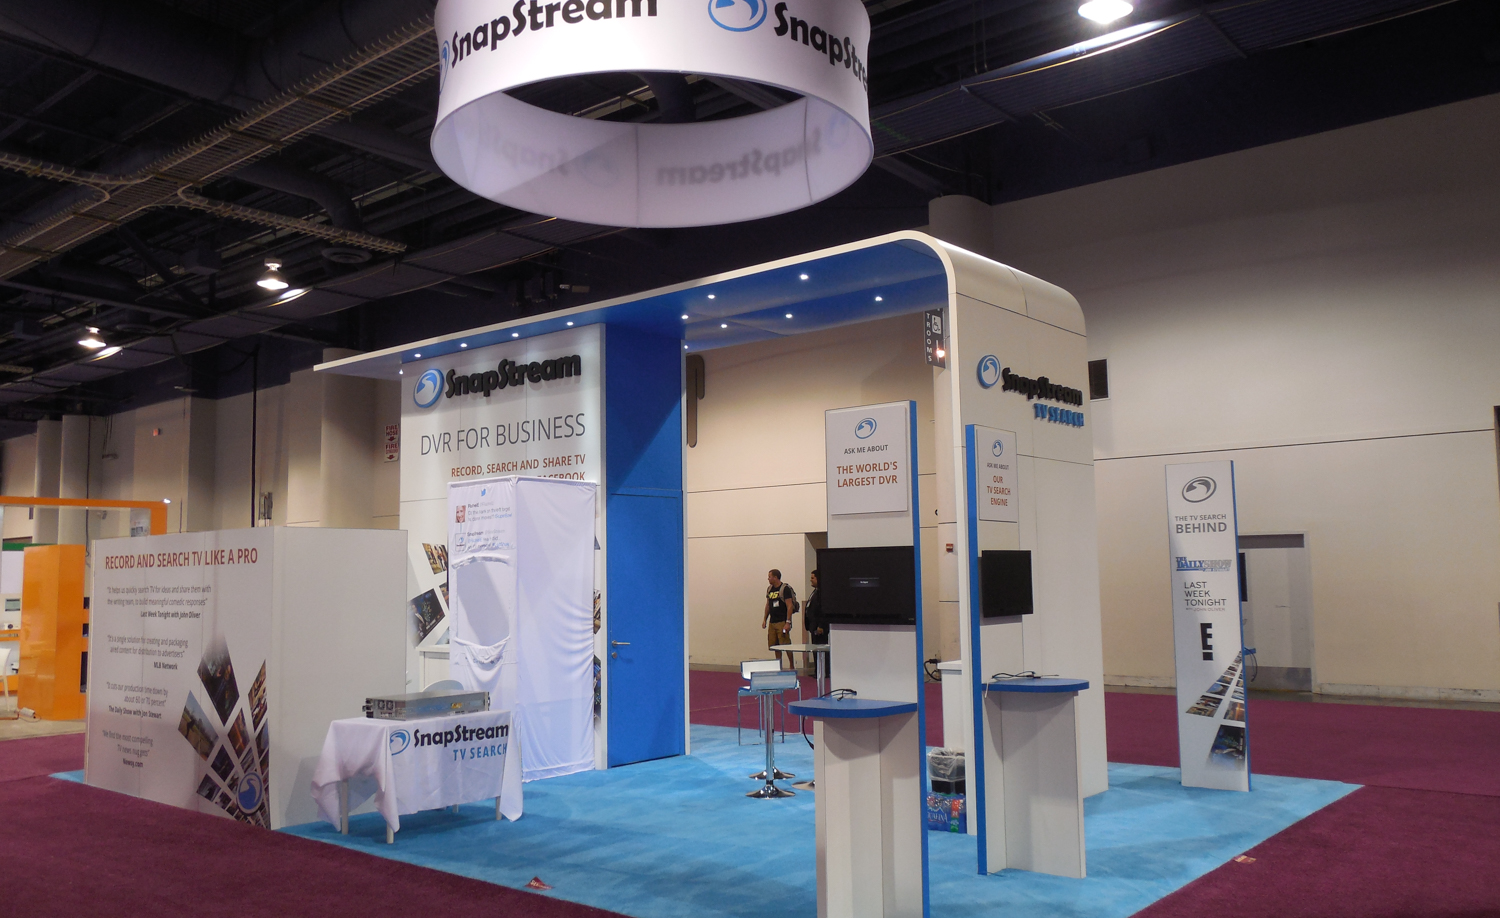 SnapStream Showfloor